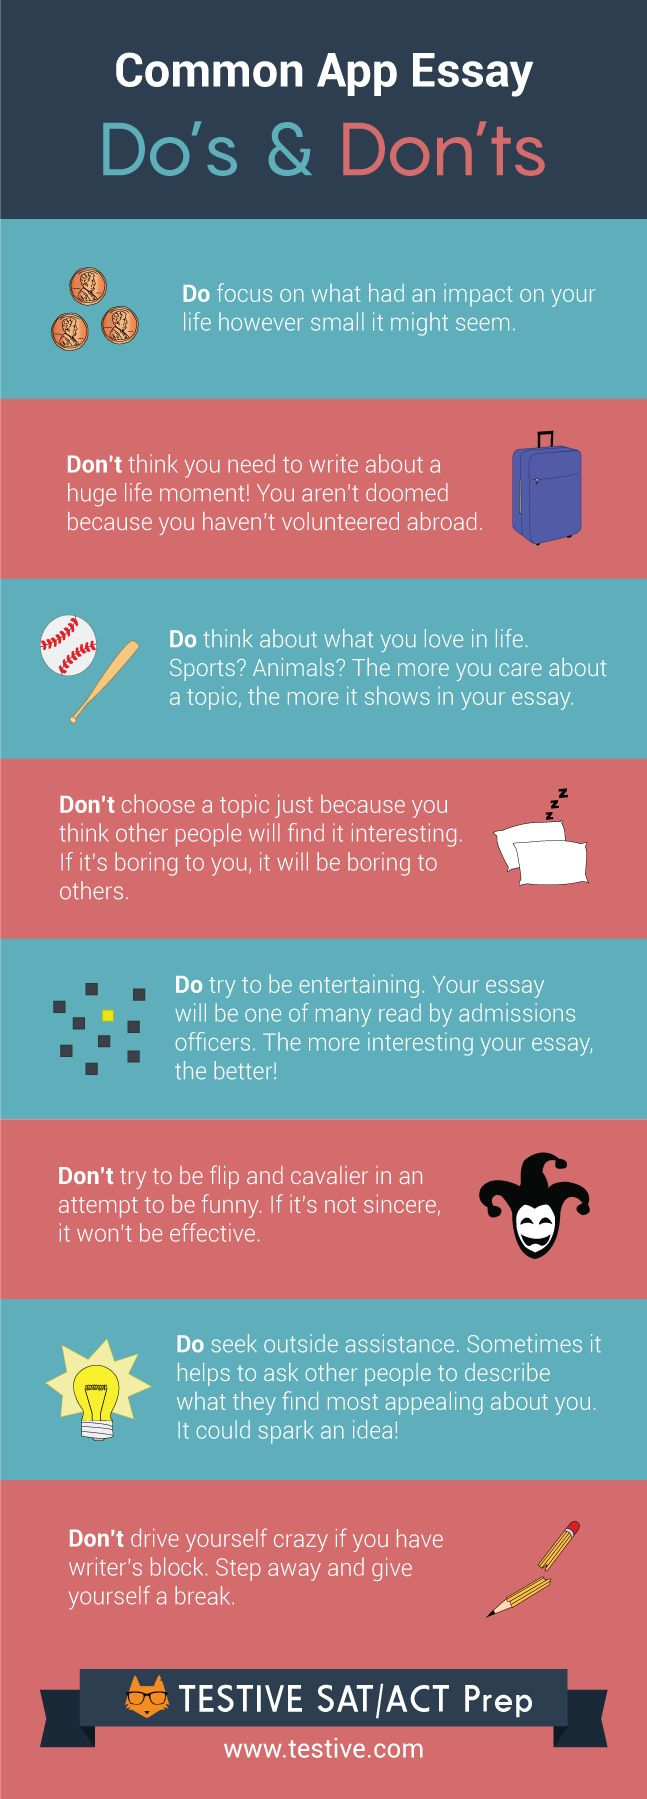 best college essay ideas college essay tips  working on your common app personal statement here s some advice on what you should write